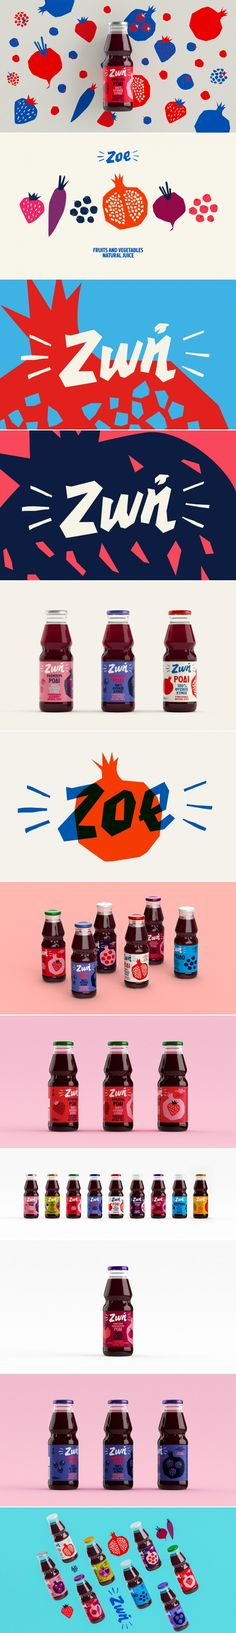 The Design For This Juice Was Inspired By Paper Cutouts and Collages — The Dieline | Packaging & Branding Design & Innovation News